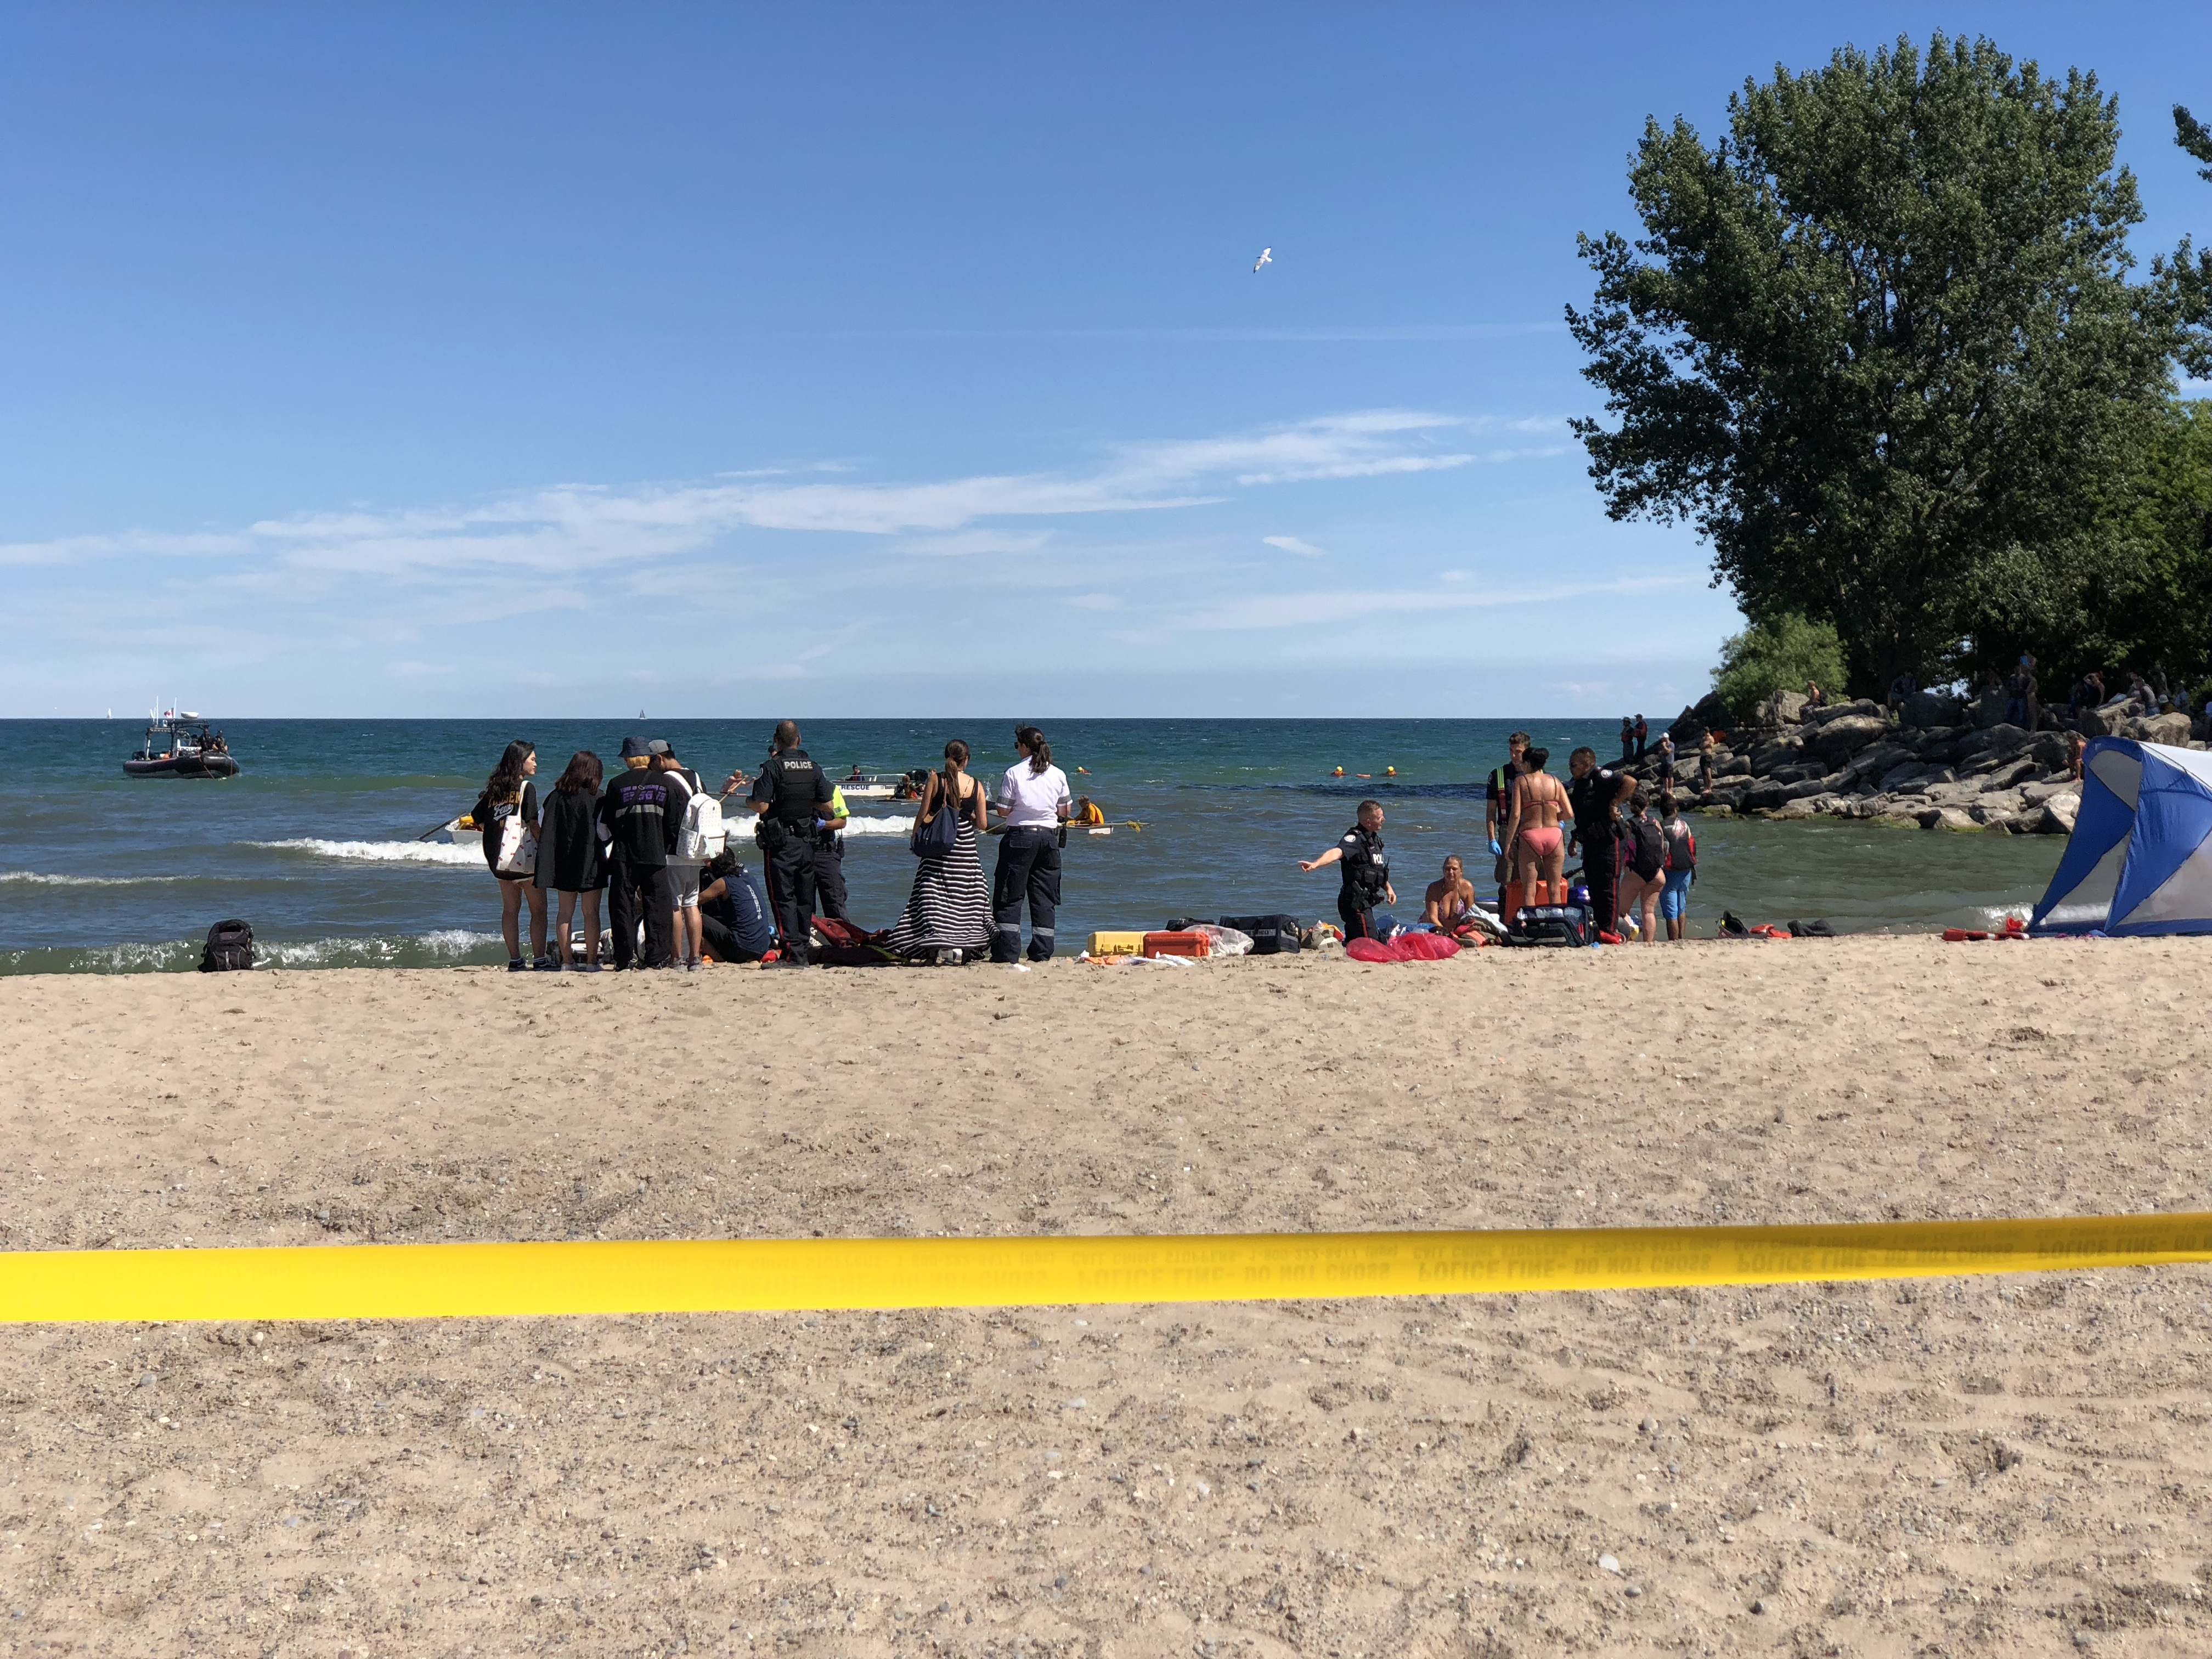 Police tape marks off an area of Woodbine Beach in Toronto during a water rescue on Aug. 10, 2018. CITYNEWS/John Hanley